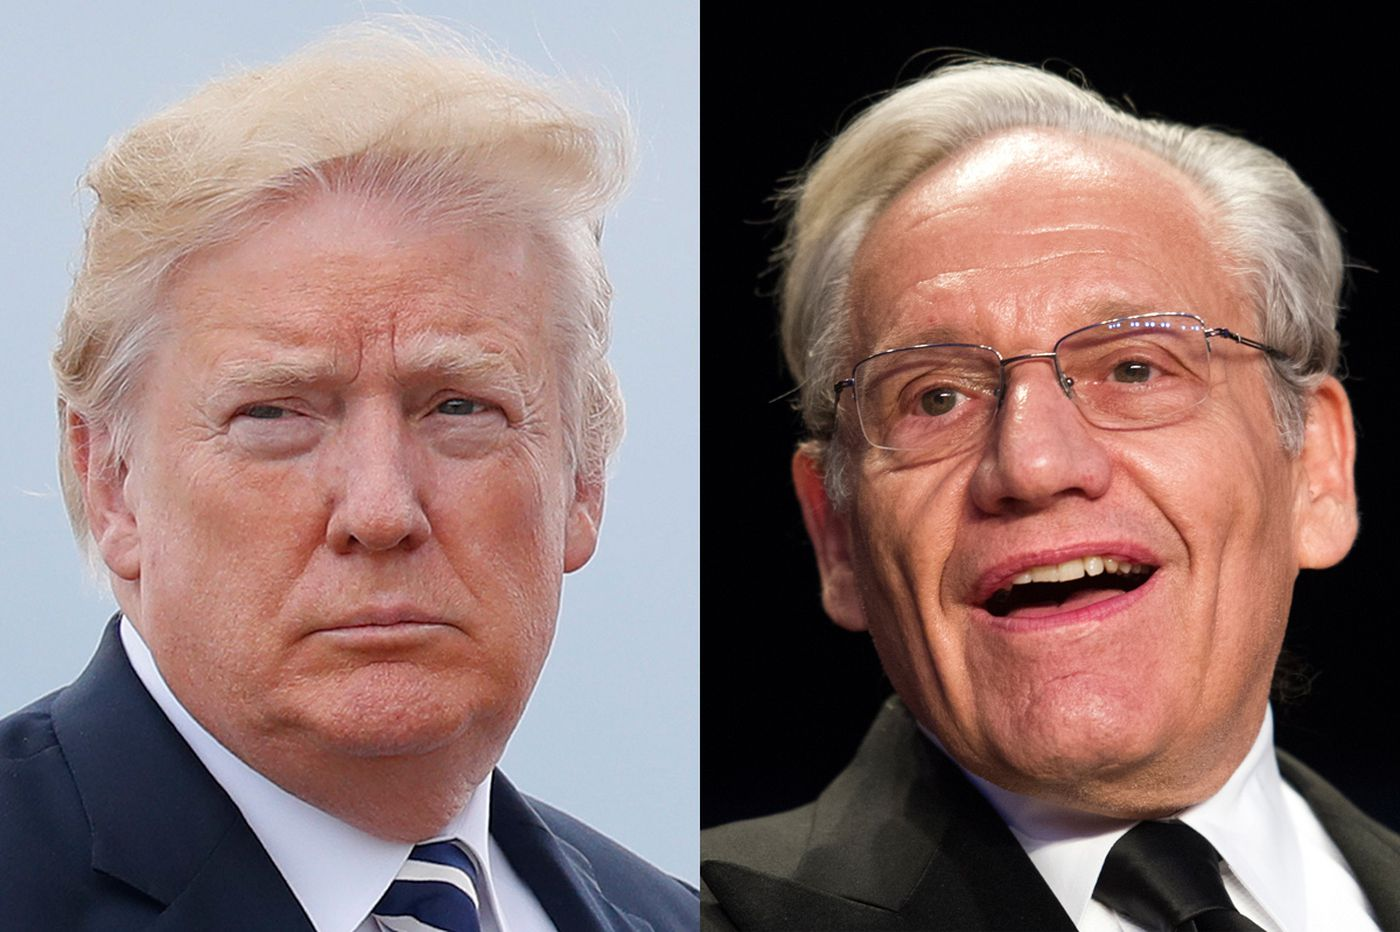 Bob Woodward on Trump: Six explosive excerpts from his new book 'Fear'